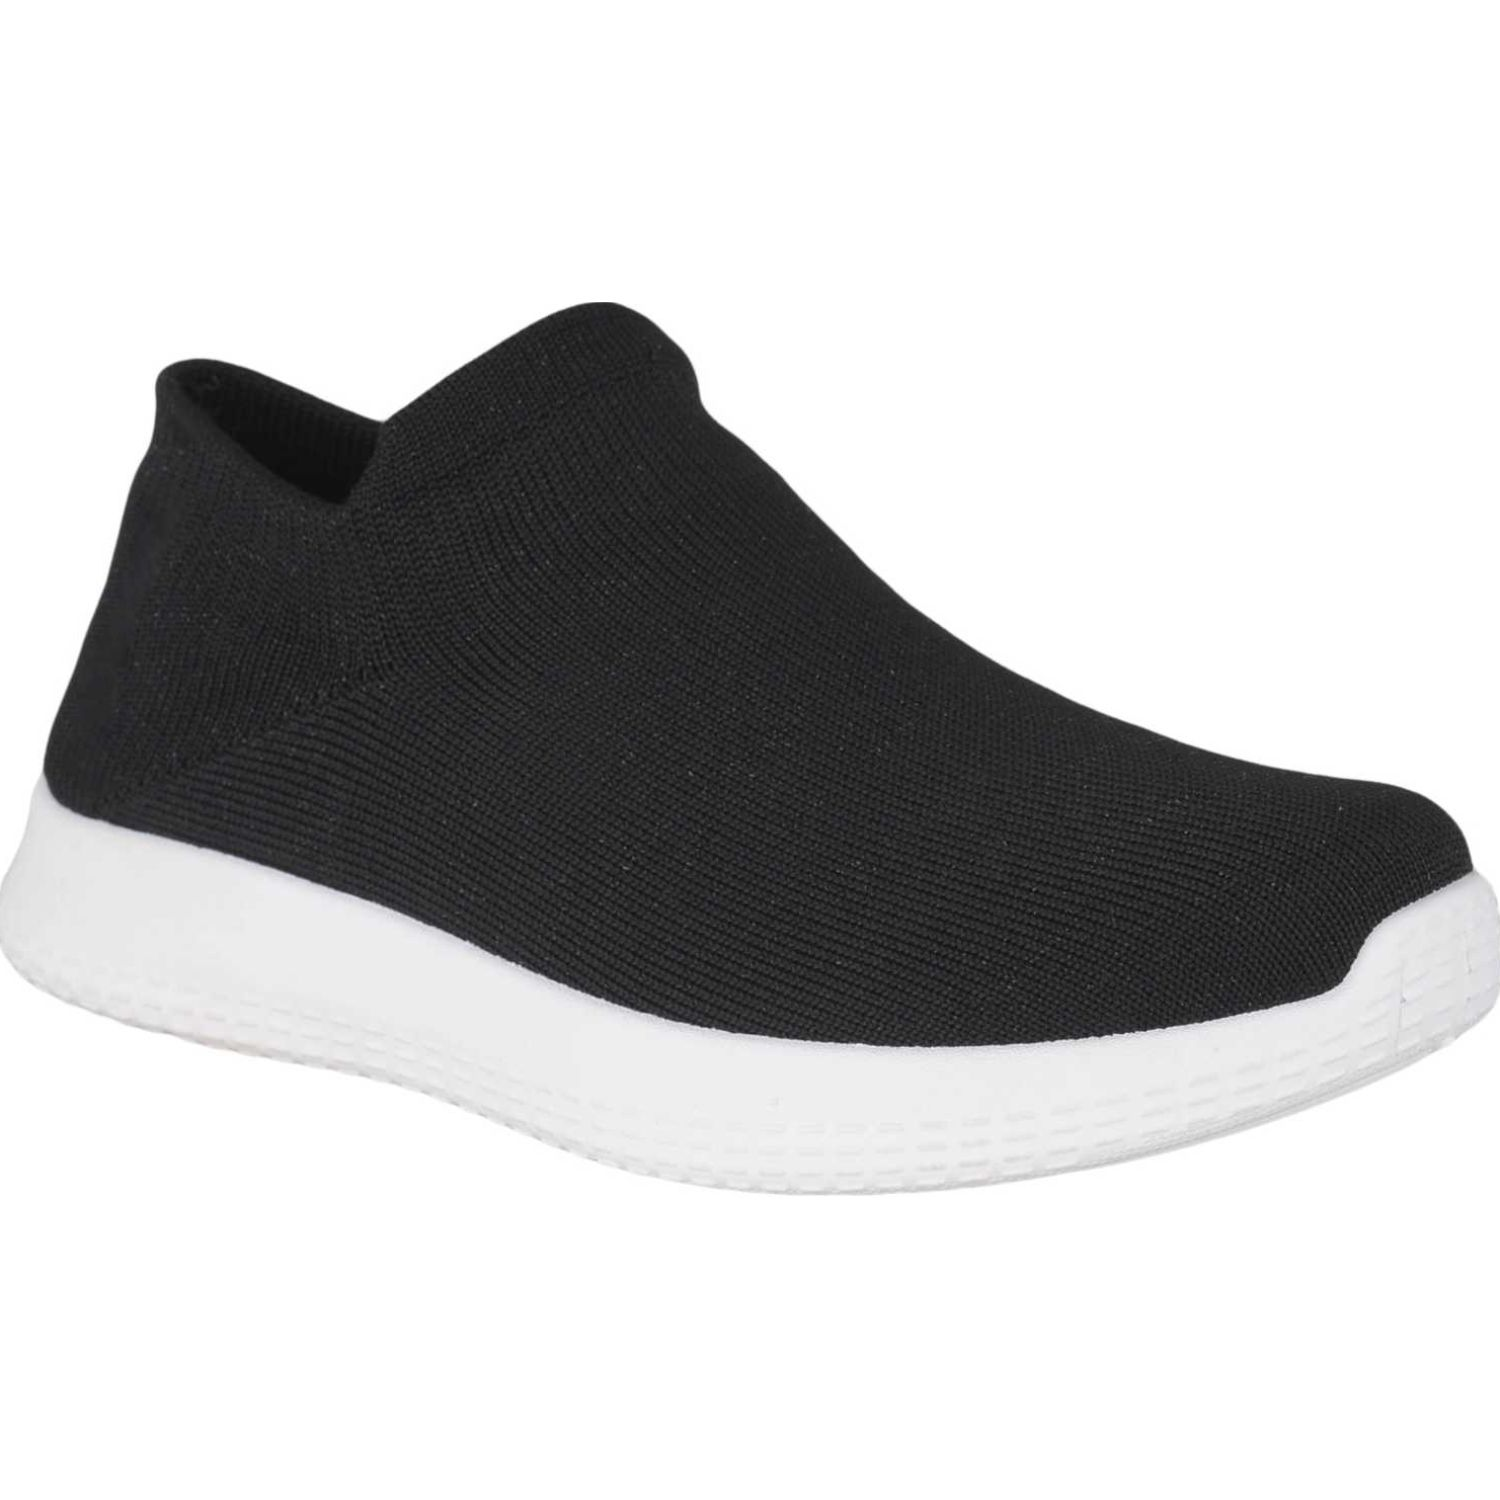 Platanitos zc 5785 Negro Zapatillas Fashion